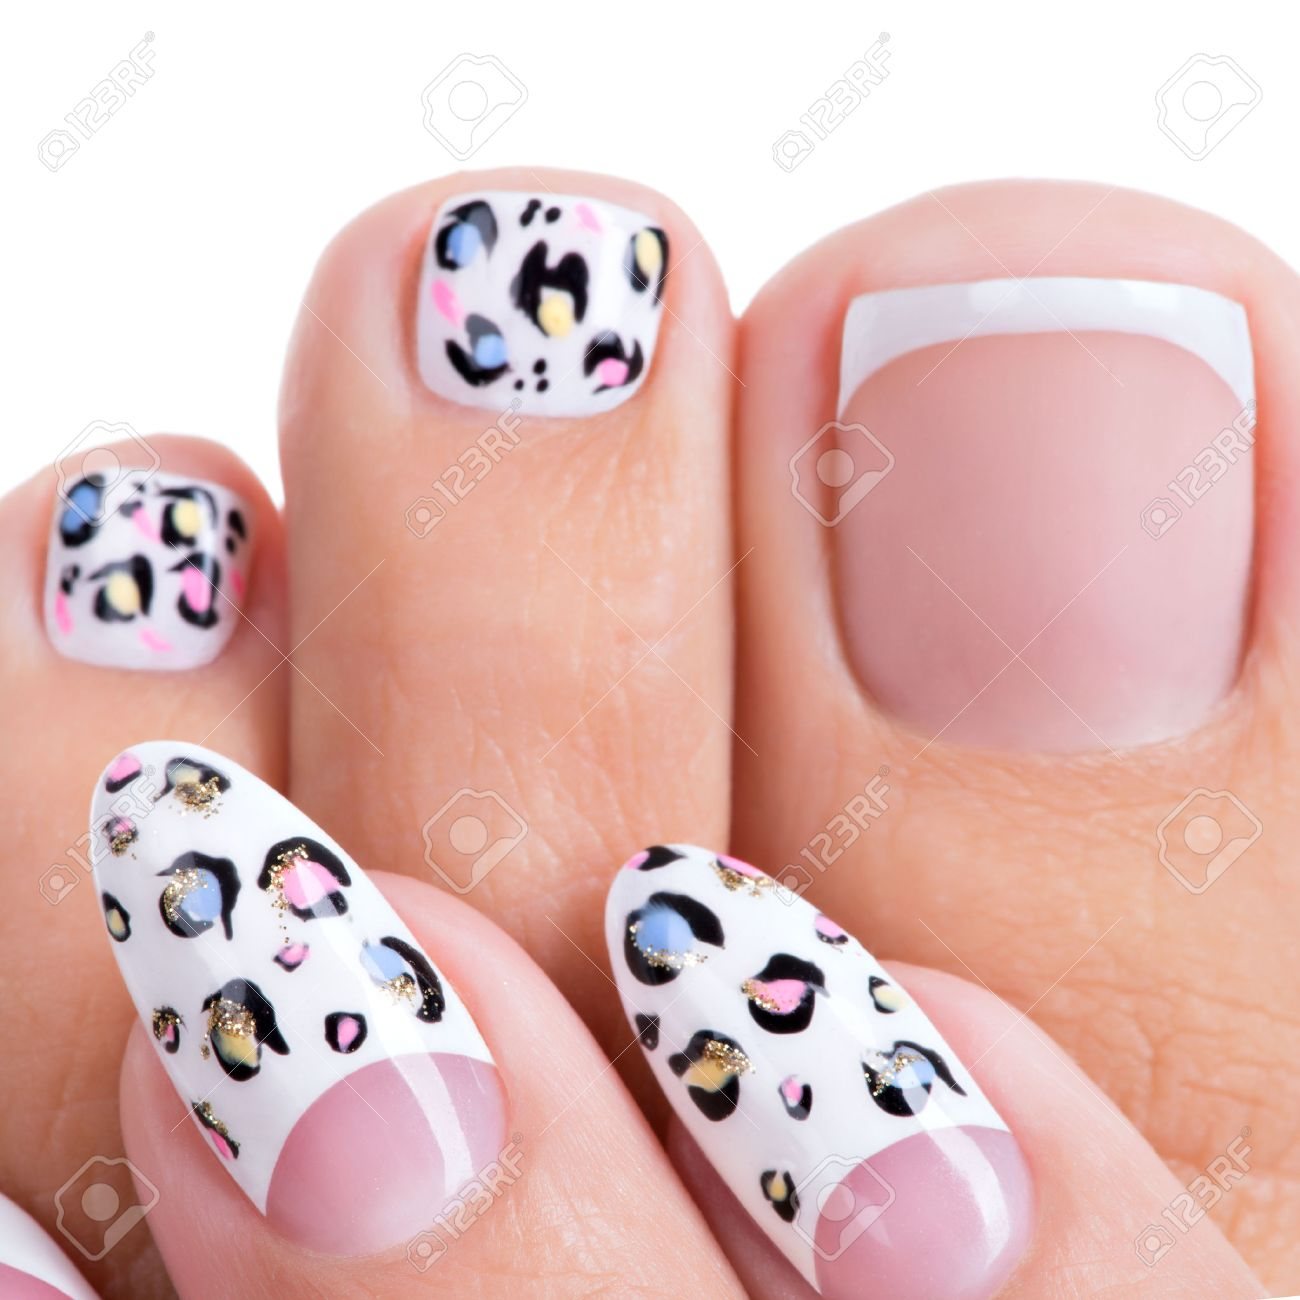 Beautiful Woman\'s Nails Of Hands And Legs With Beautiful French ...